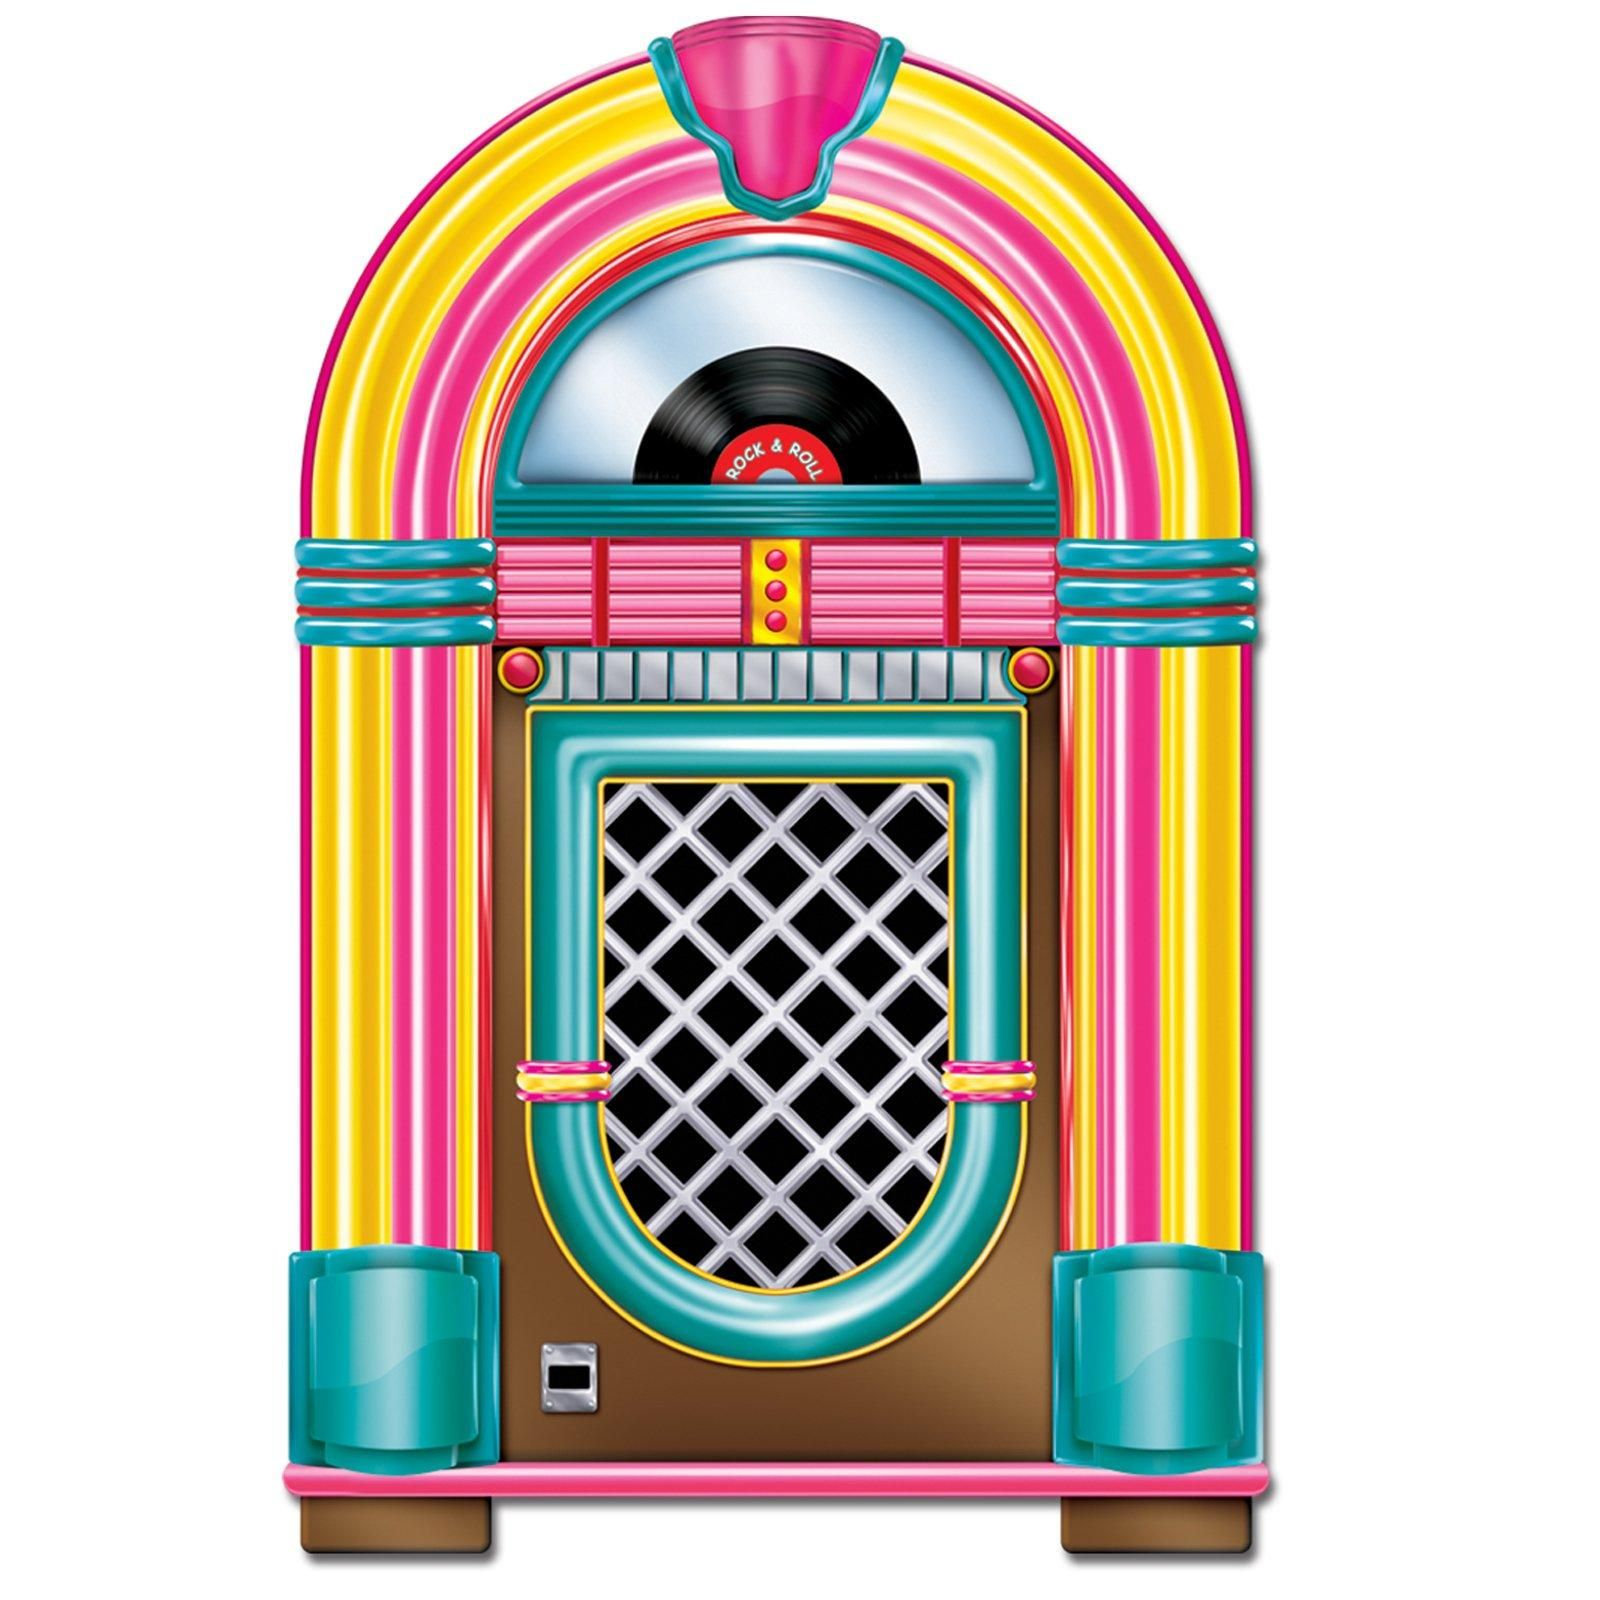 1950s jukebox clip art clipart free clipart clipart myndir rh pinterest co uk jukebox clipart free 50's jukebox clipart